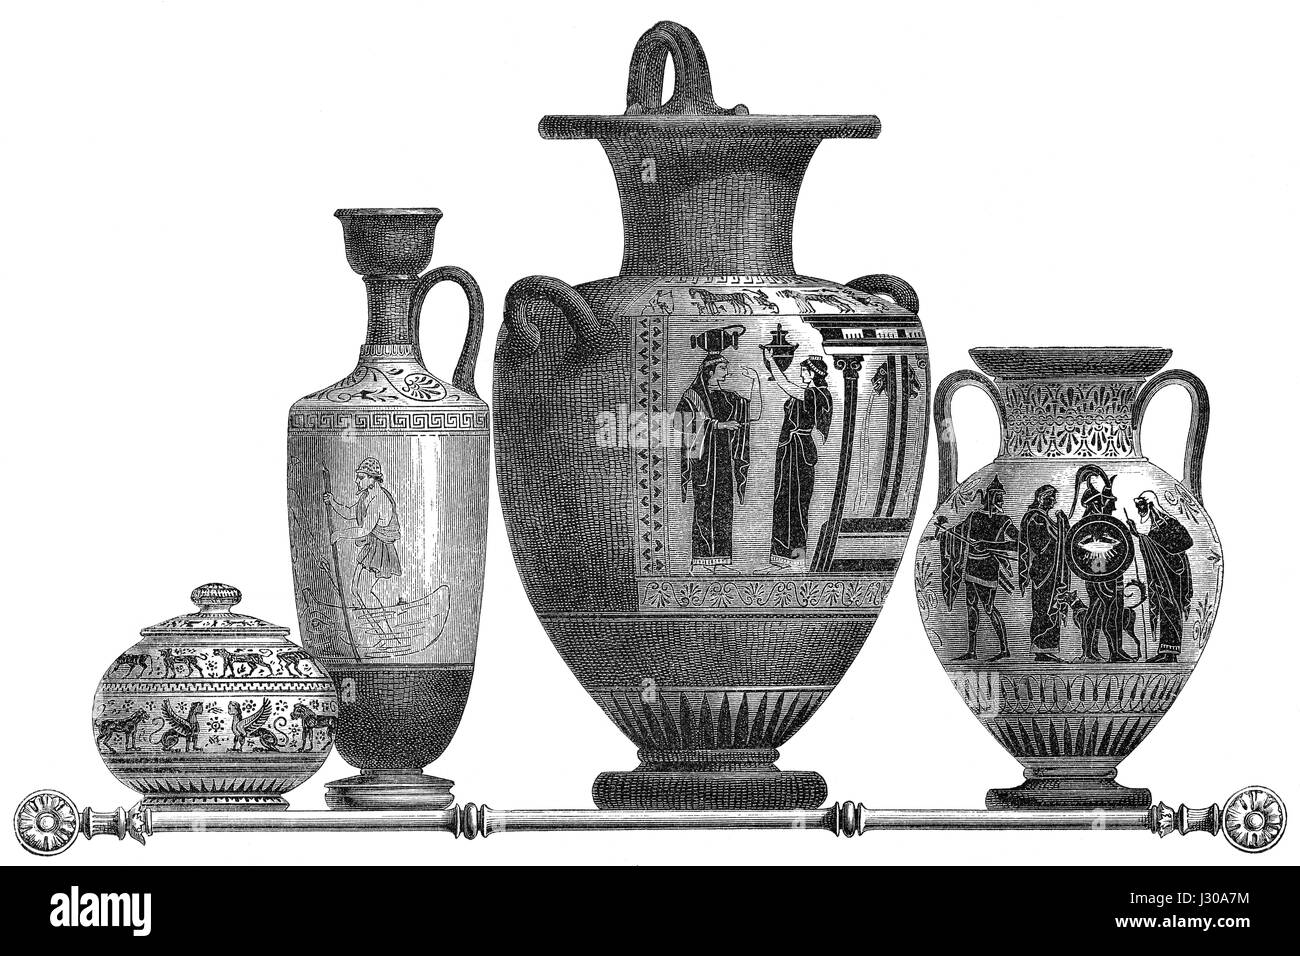 Vases from ancient Greece - Stock Image